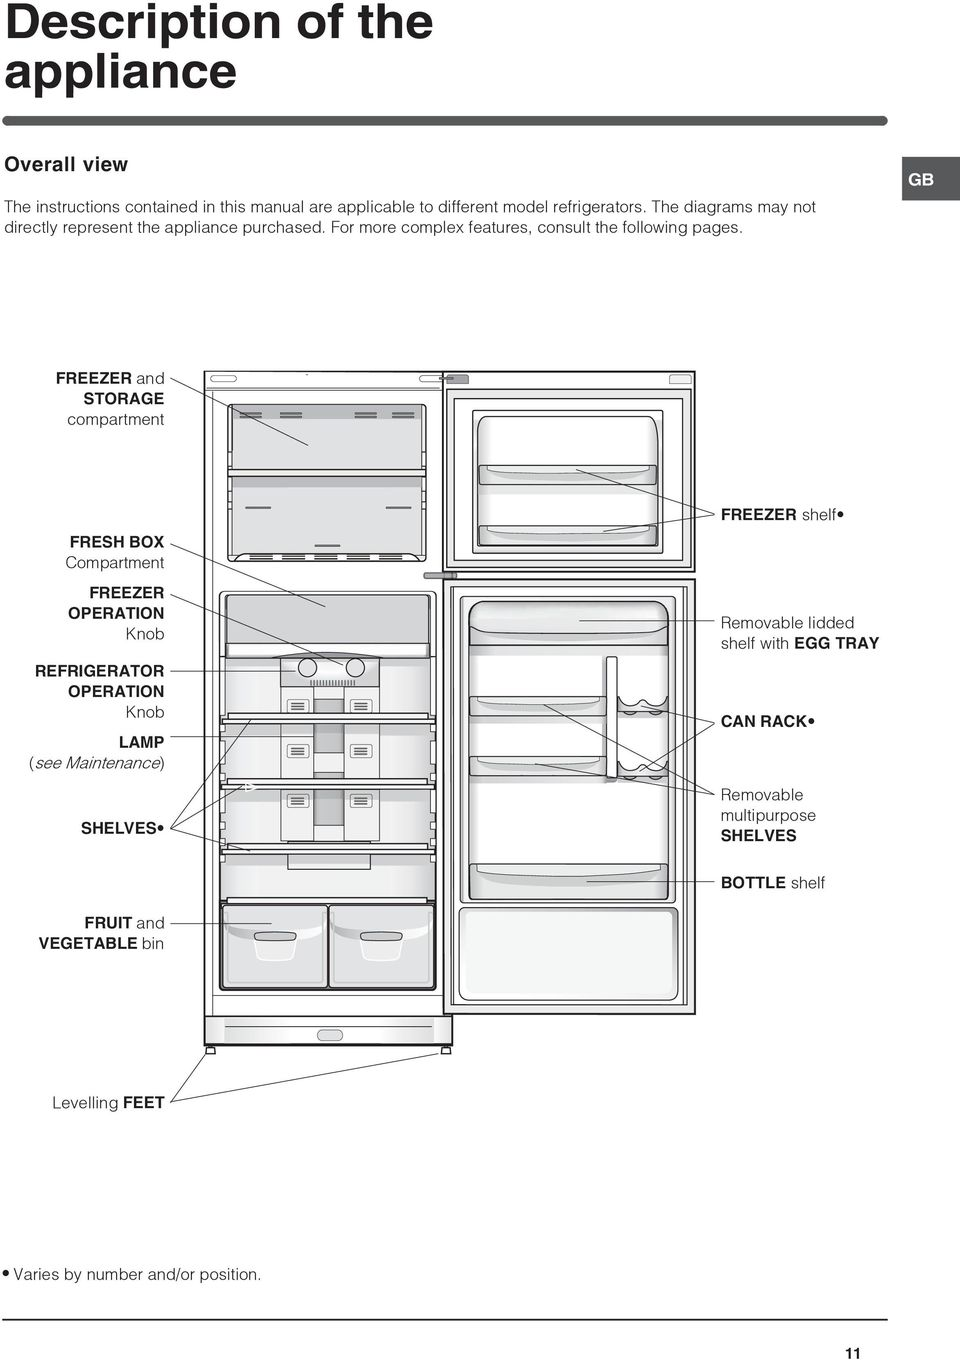 FREEZER and STORAGE compartment FRESH BOX Compartment FREEZER OPERATION Knob REFRIGERATOR OPERATION Knob LAMP (see Maintenance) SHELVES